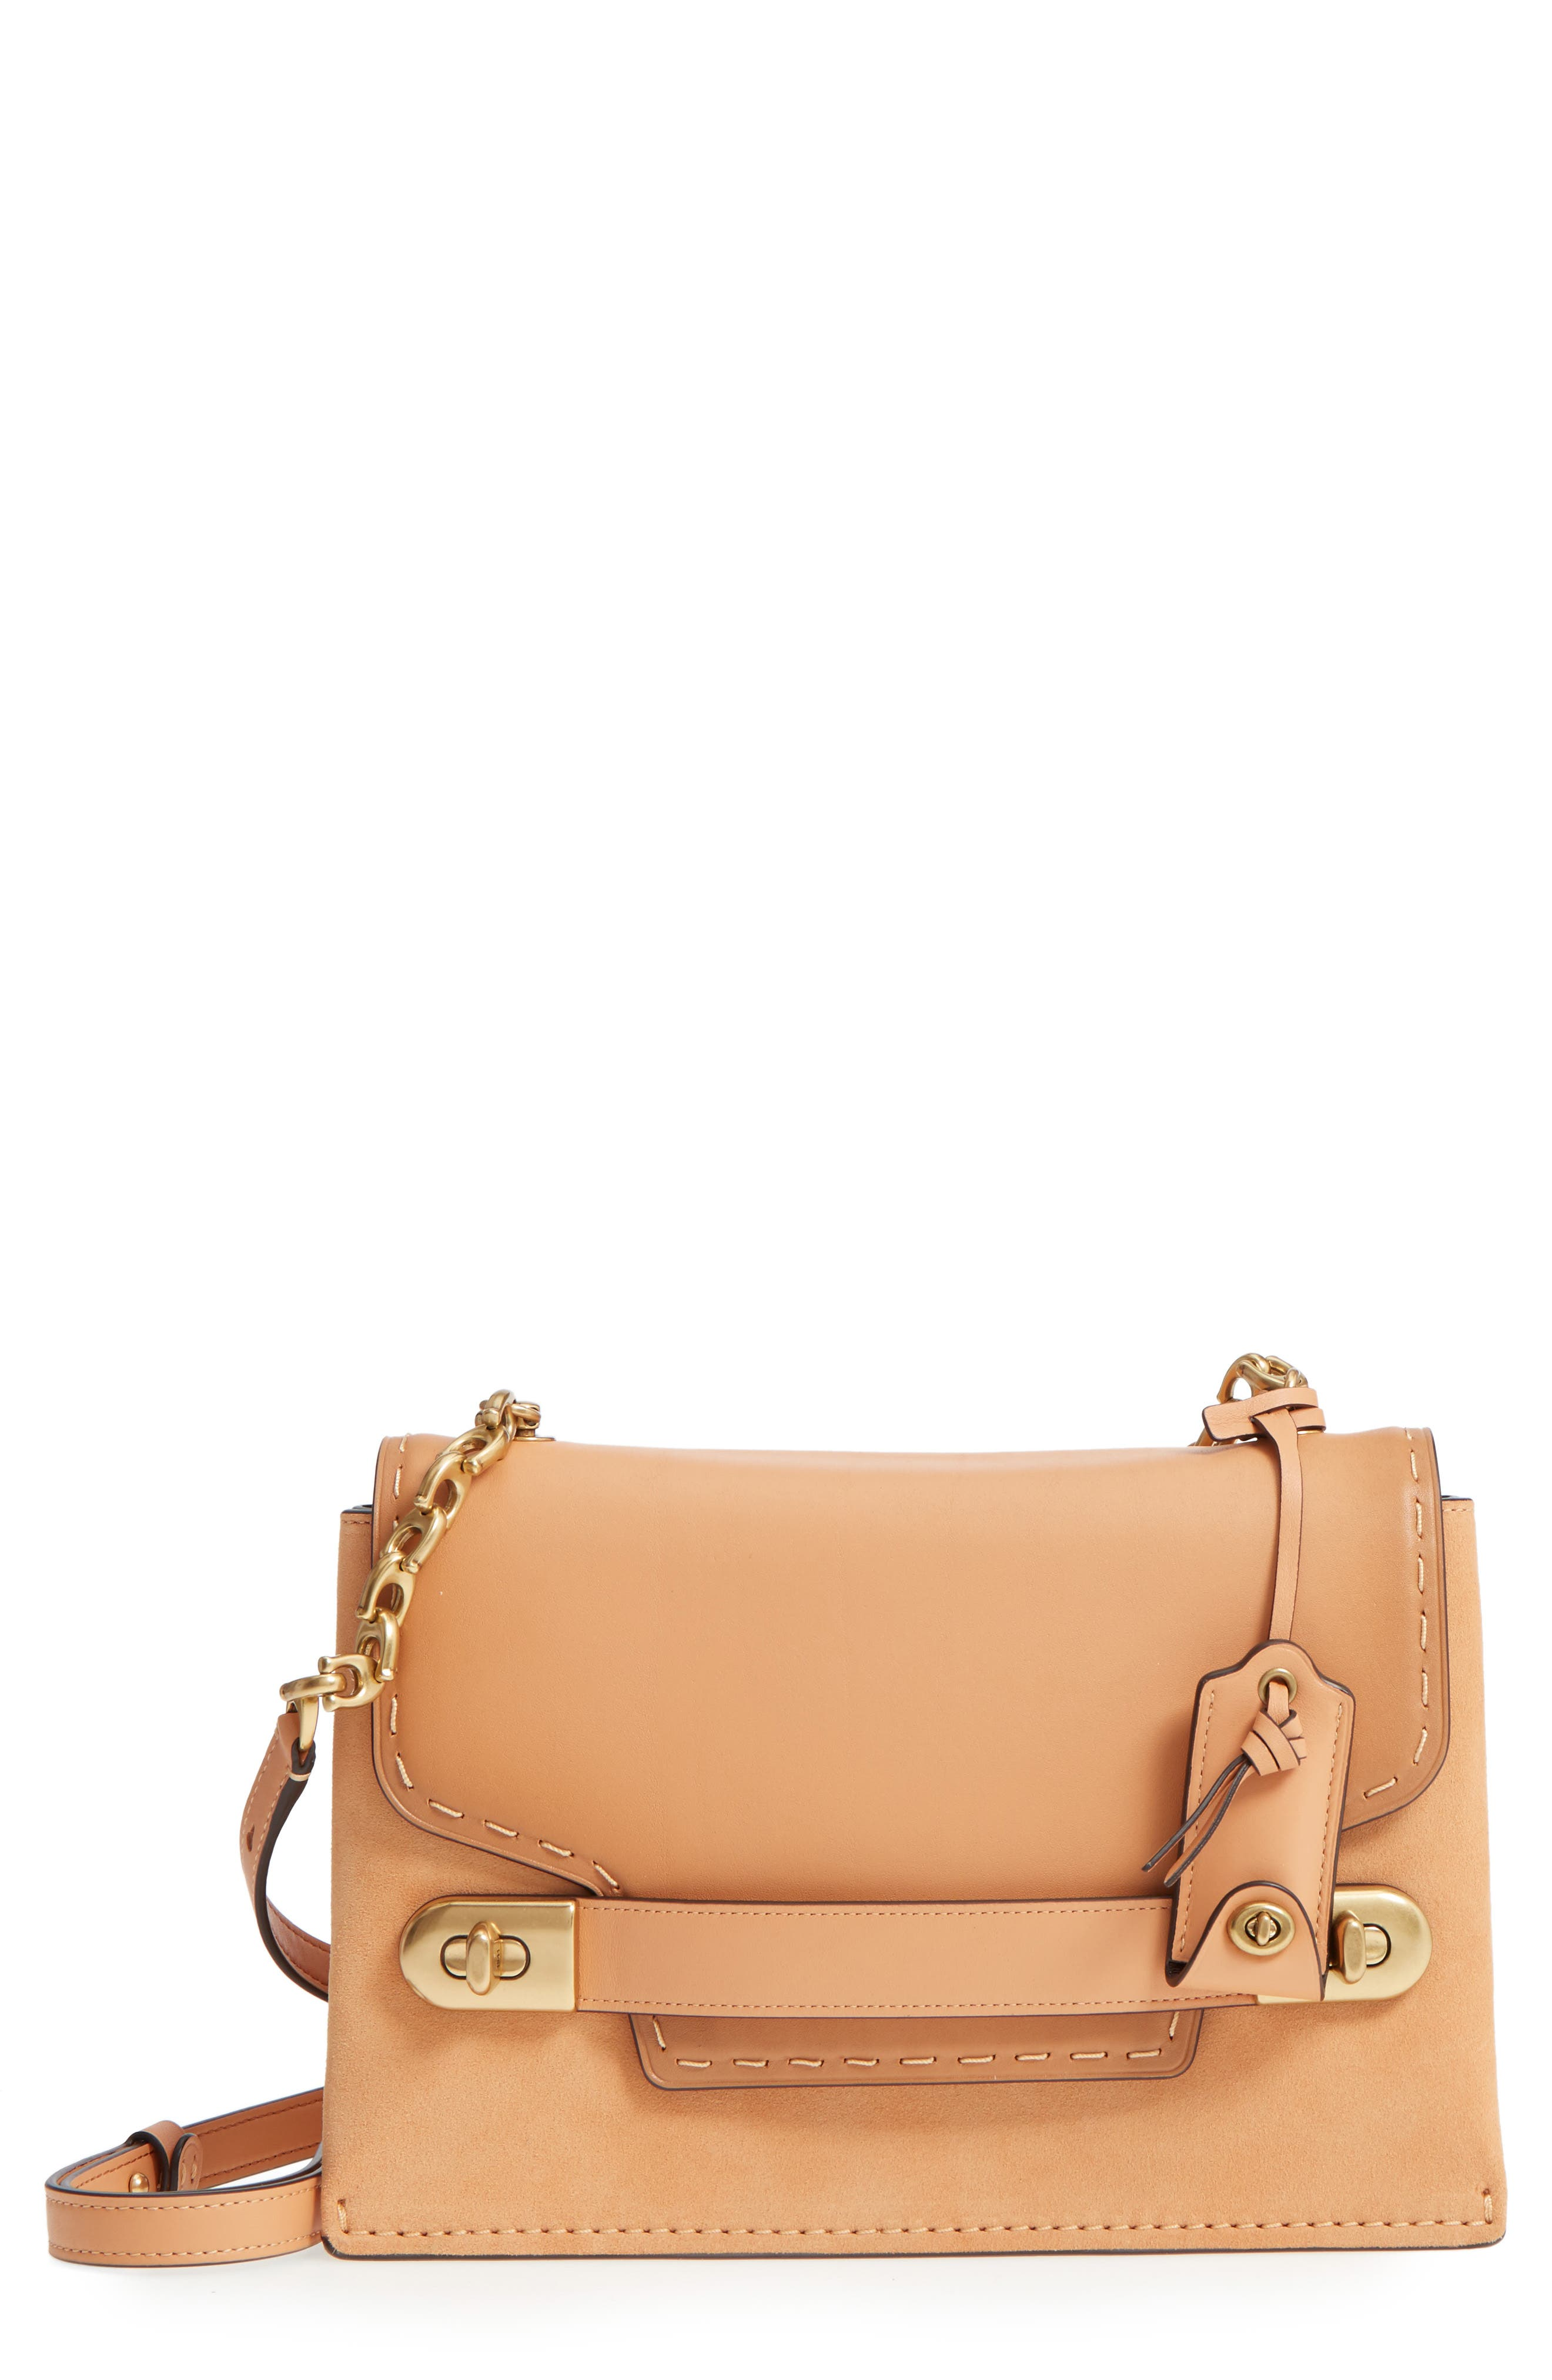 Swagger Chain Leather Crossbody Bag,                             Main thumbnail 1, color,                             Apricot Sand